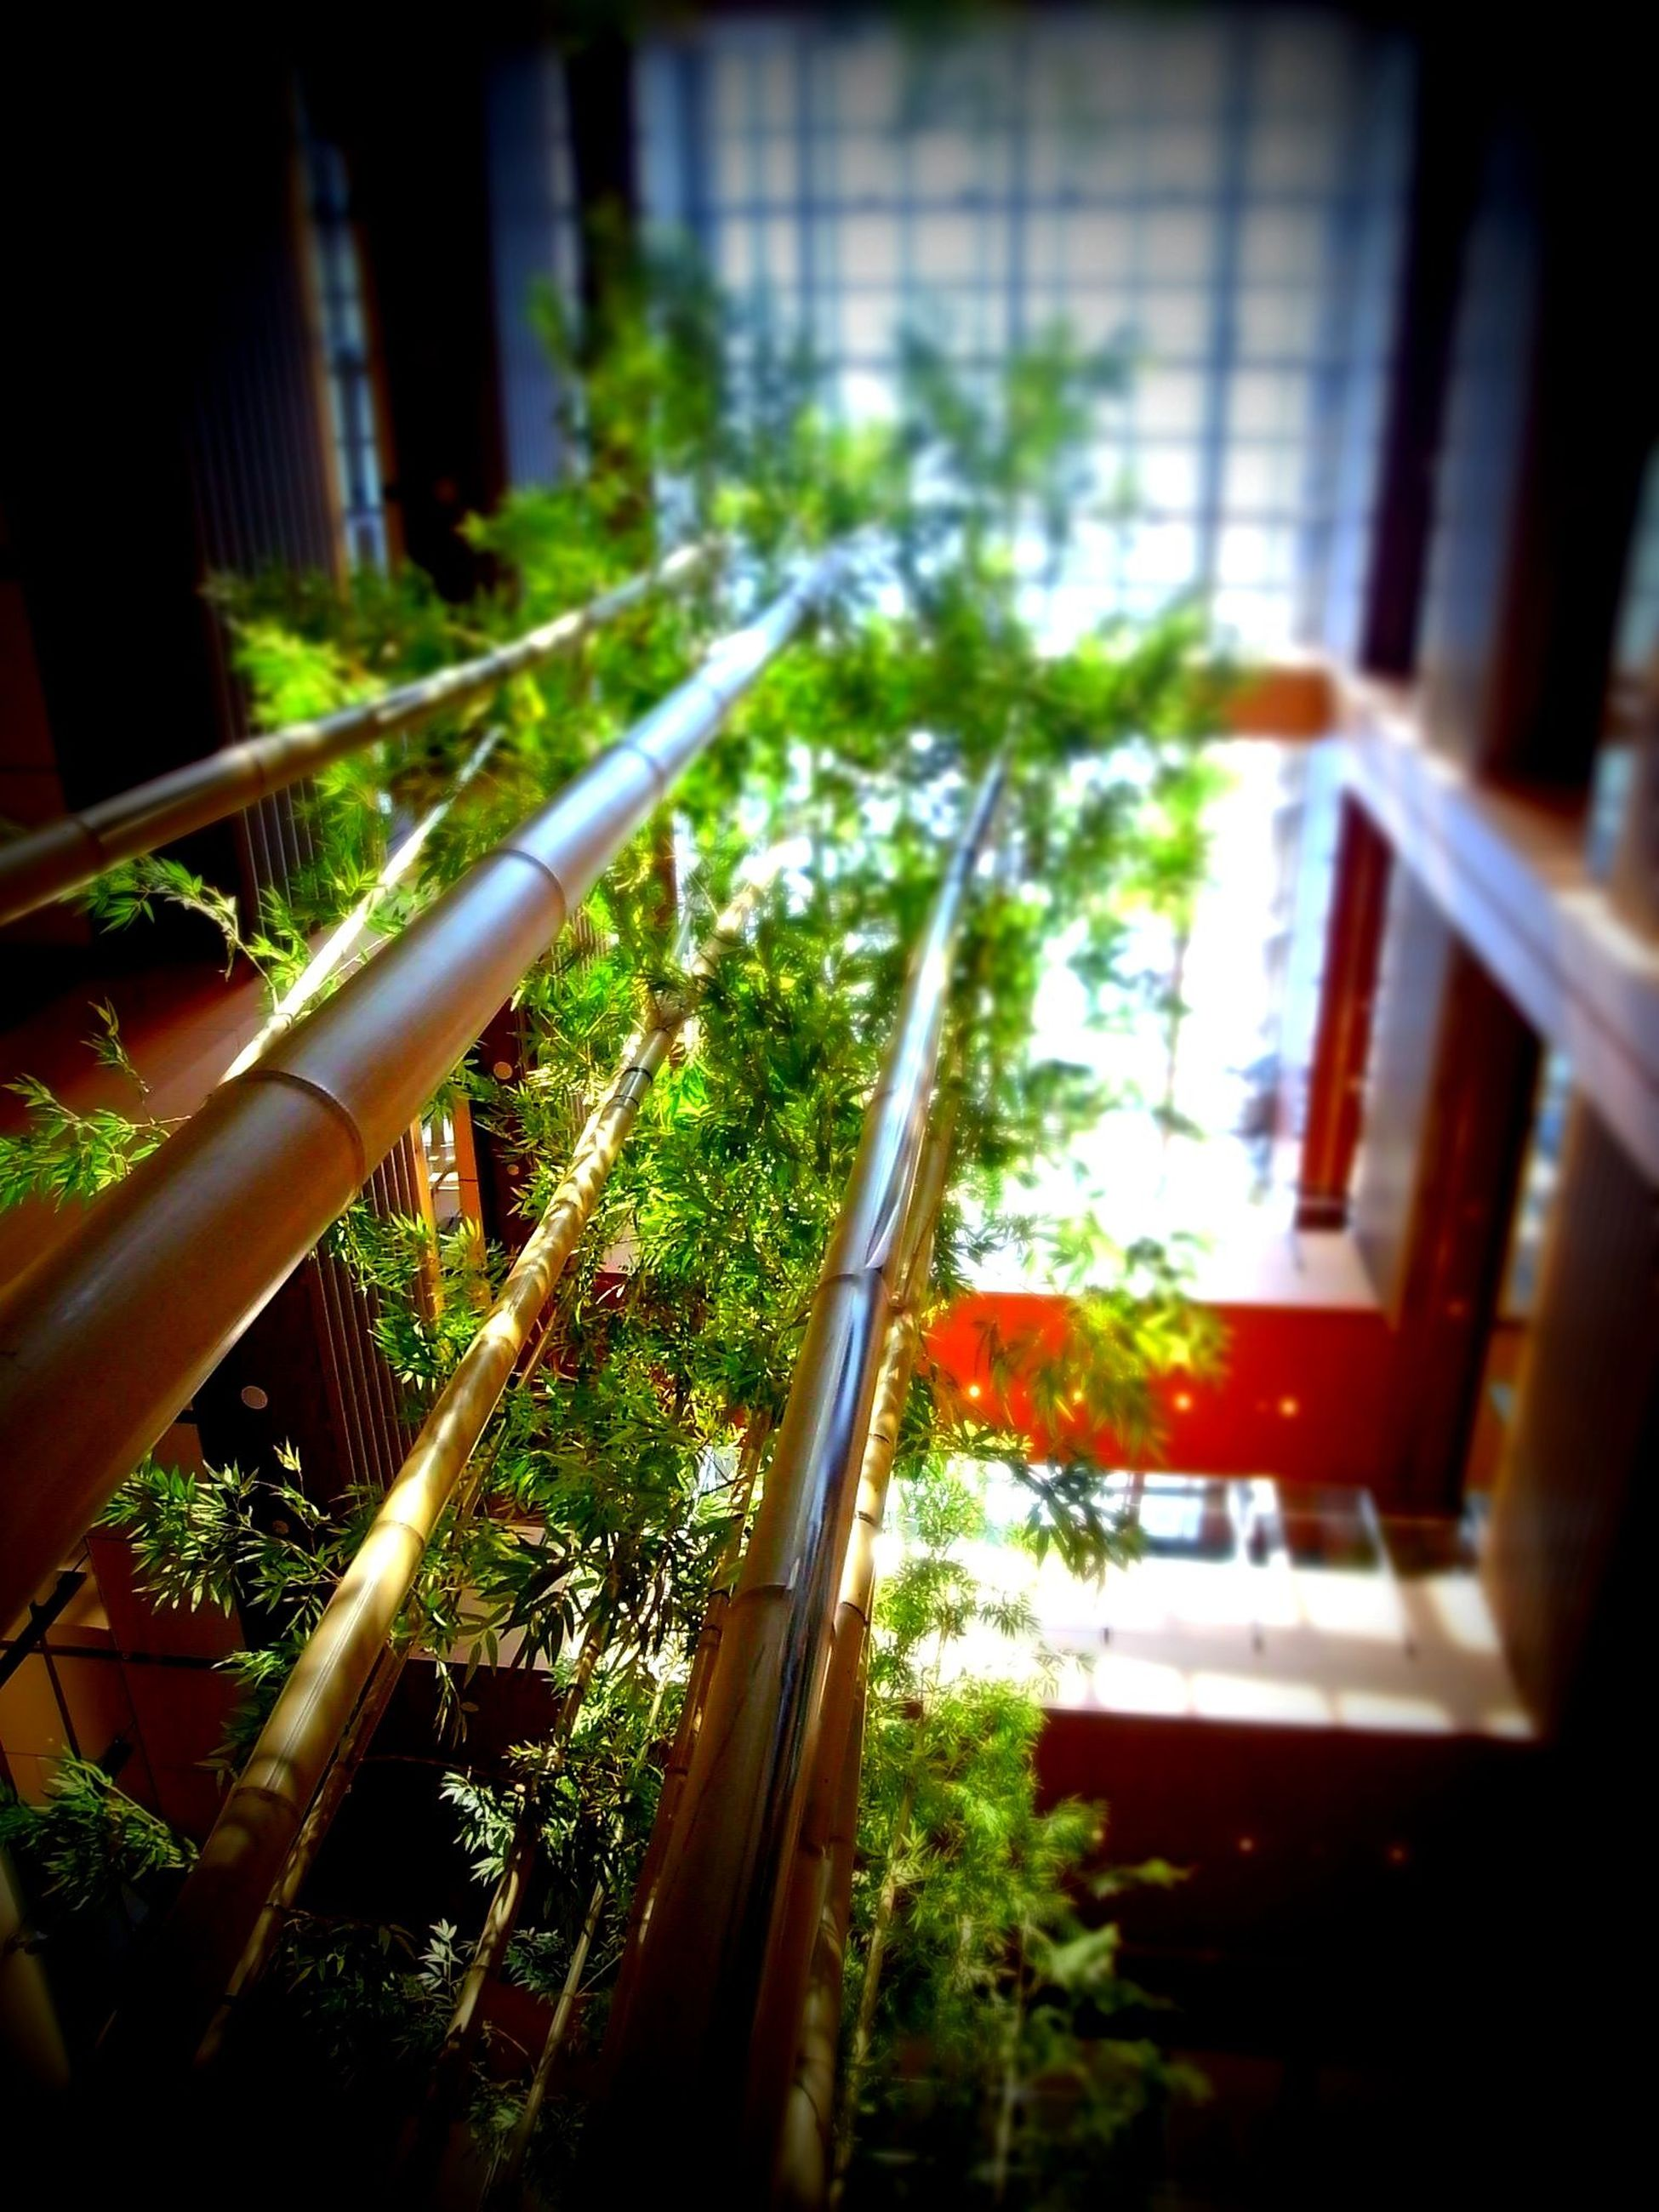 window, plant, growth, indoors, built structure, potted plant, architecture, house, building exterior, glass - material, sunlight, front or back yard, tree, green color, day, balcony, no people, nature, leaf, window sill